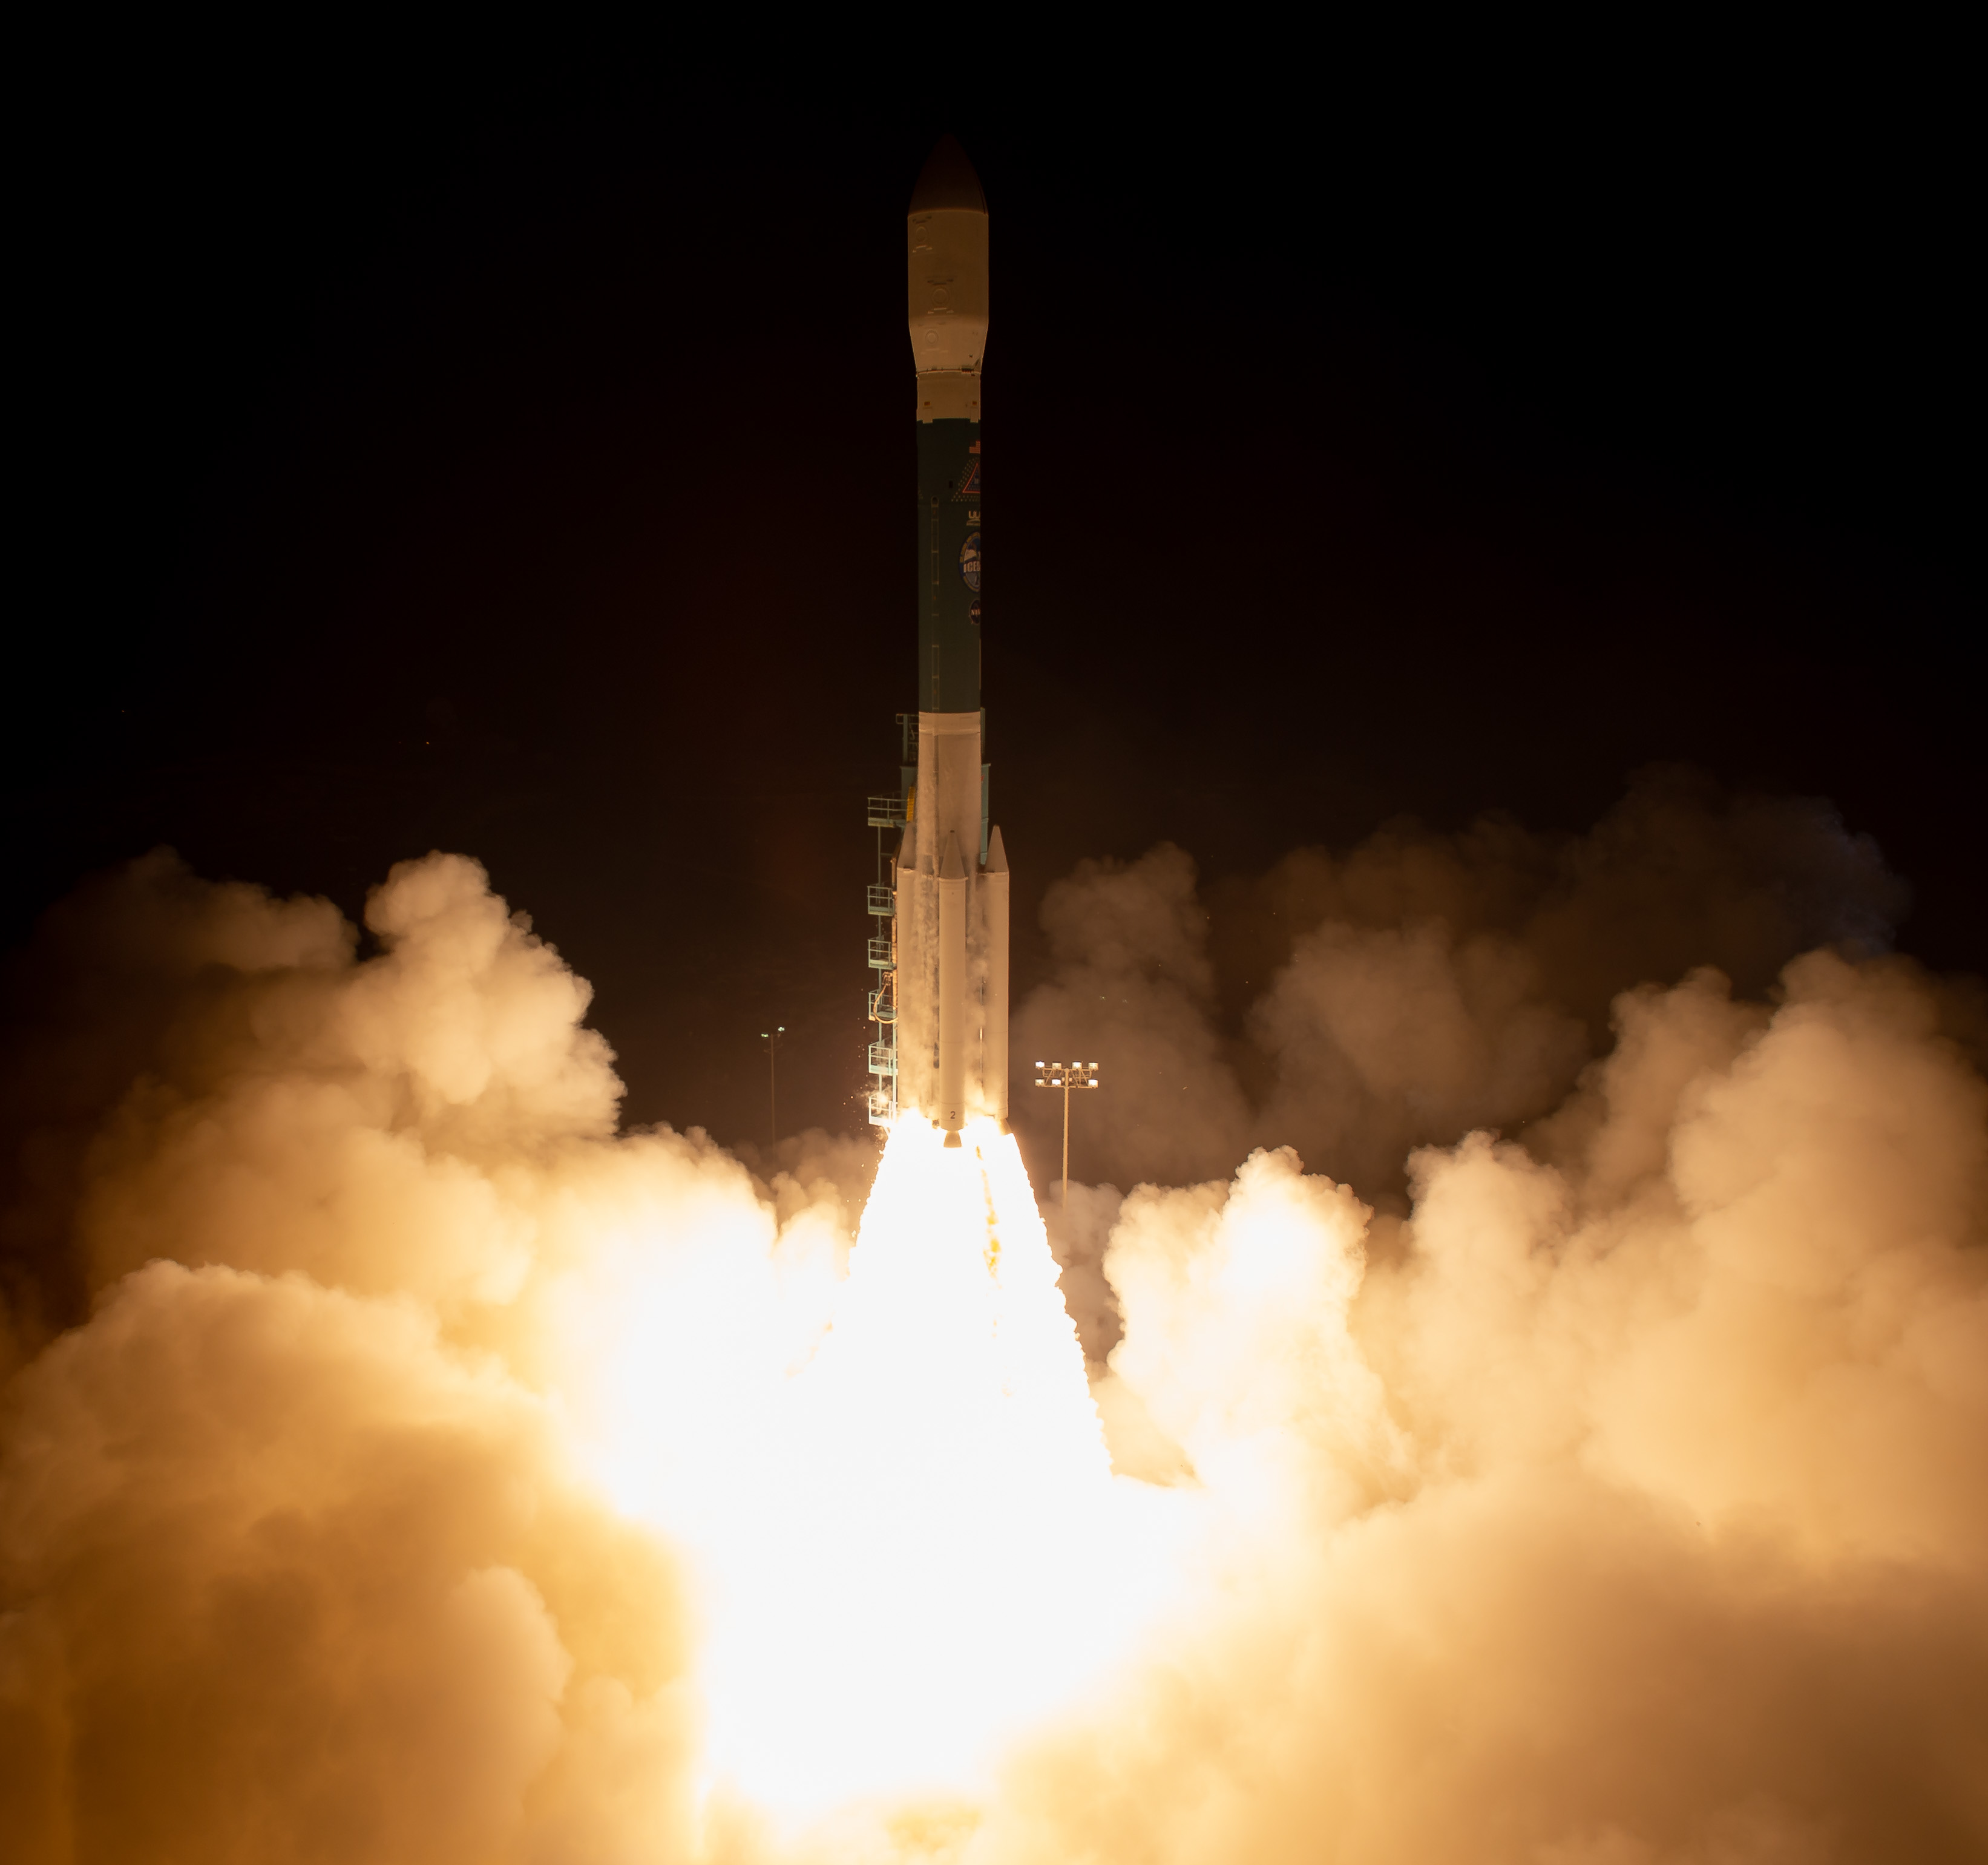 ICESat-2 Lifts Off to Study Earth's Changing Ice